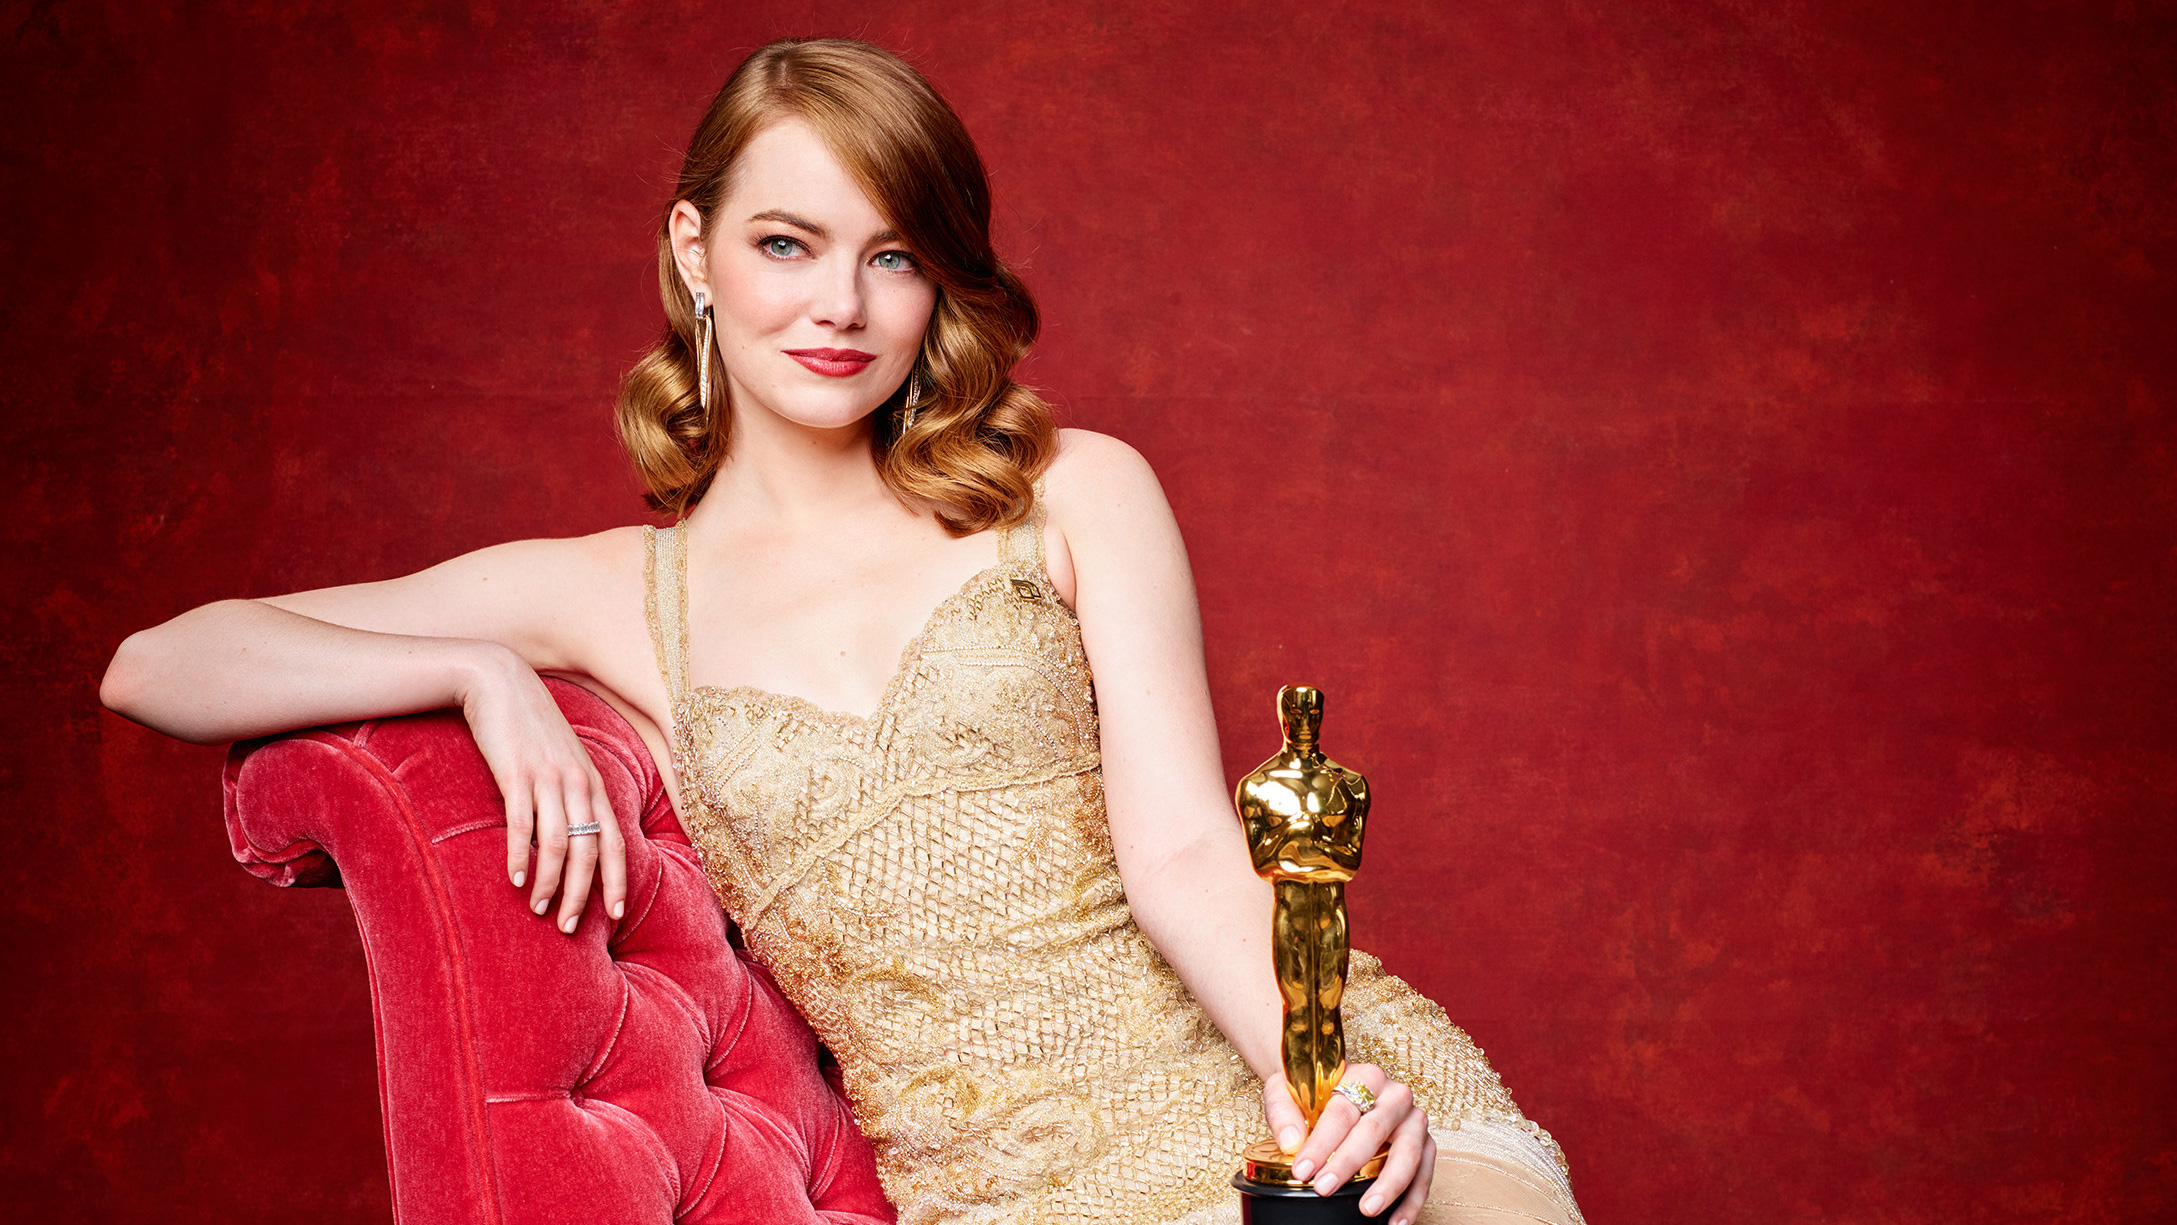 <b>Emma Stone</b> Wallpapers - Page 1 - HD Wallpapers